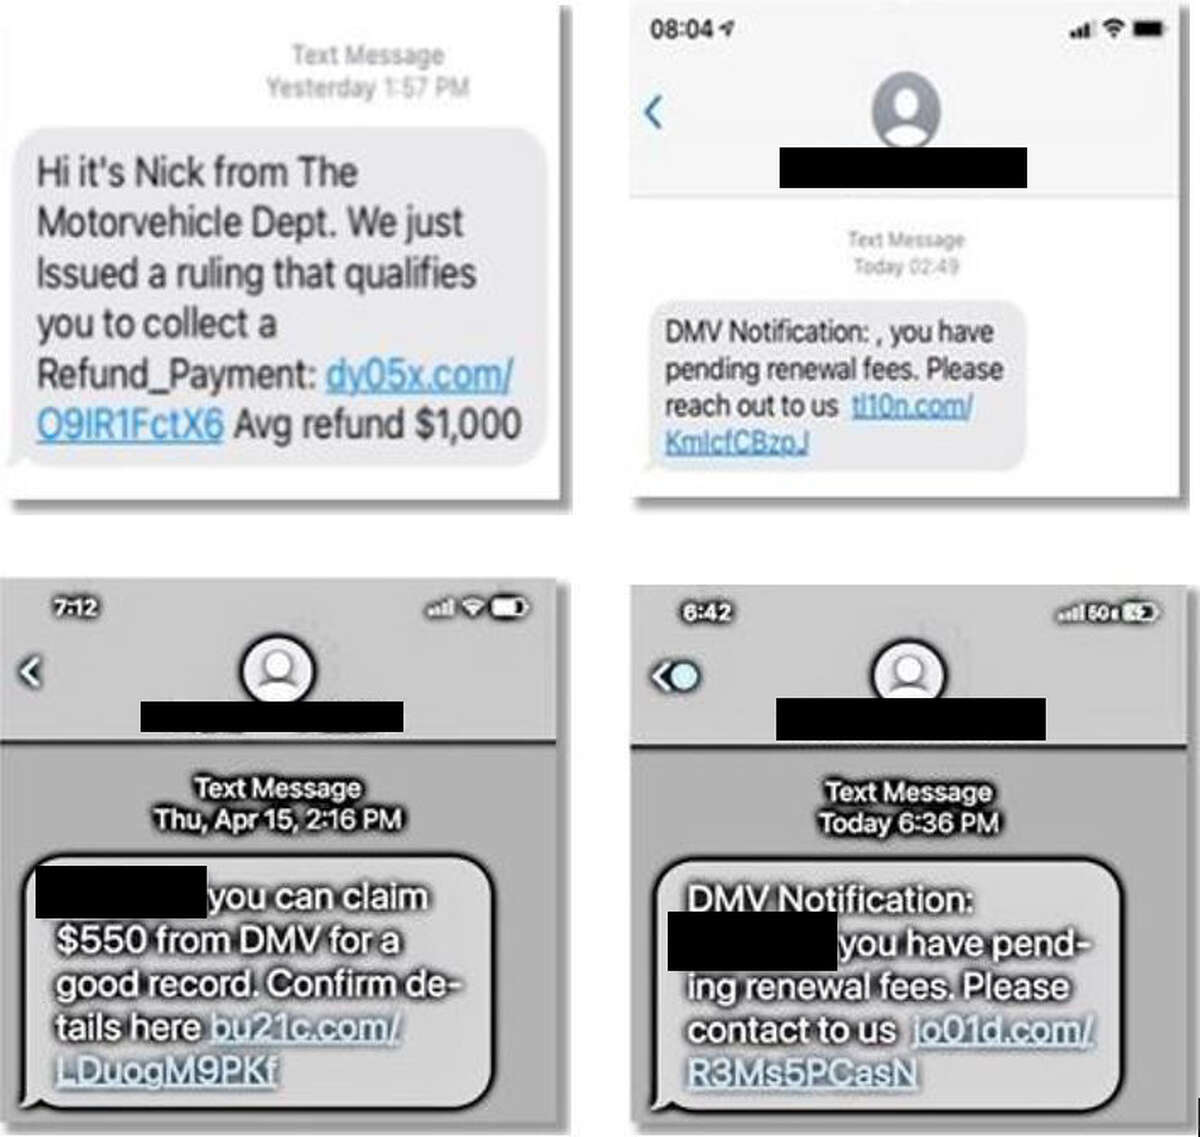 Examples of suspicious messages to look out for